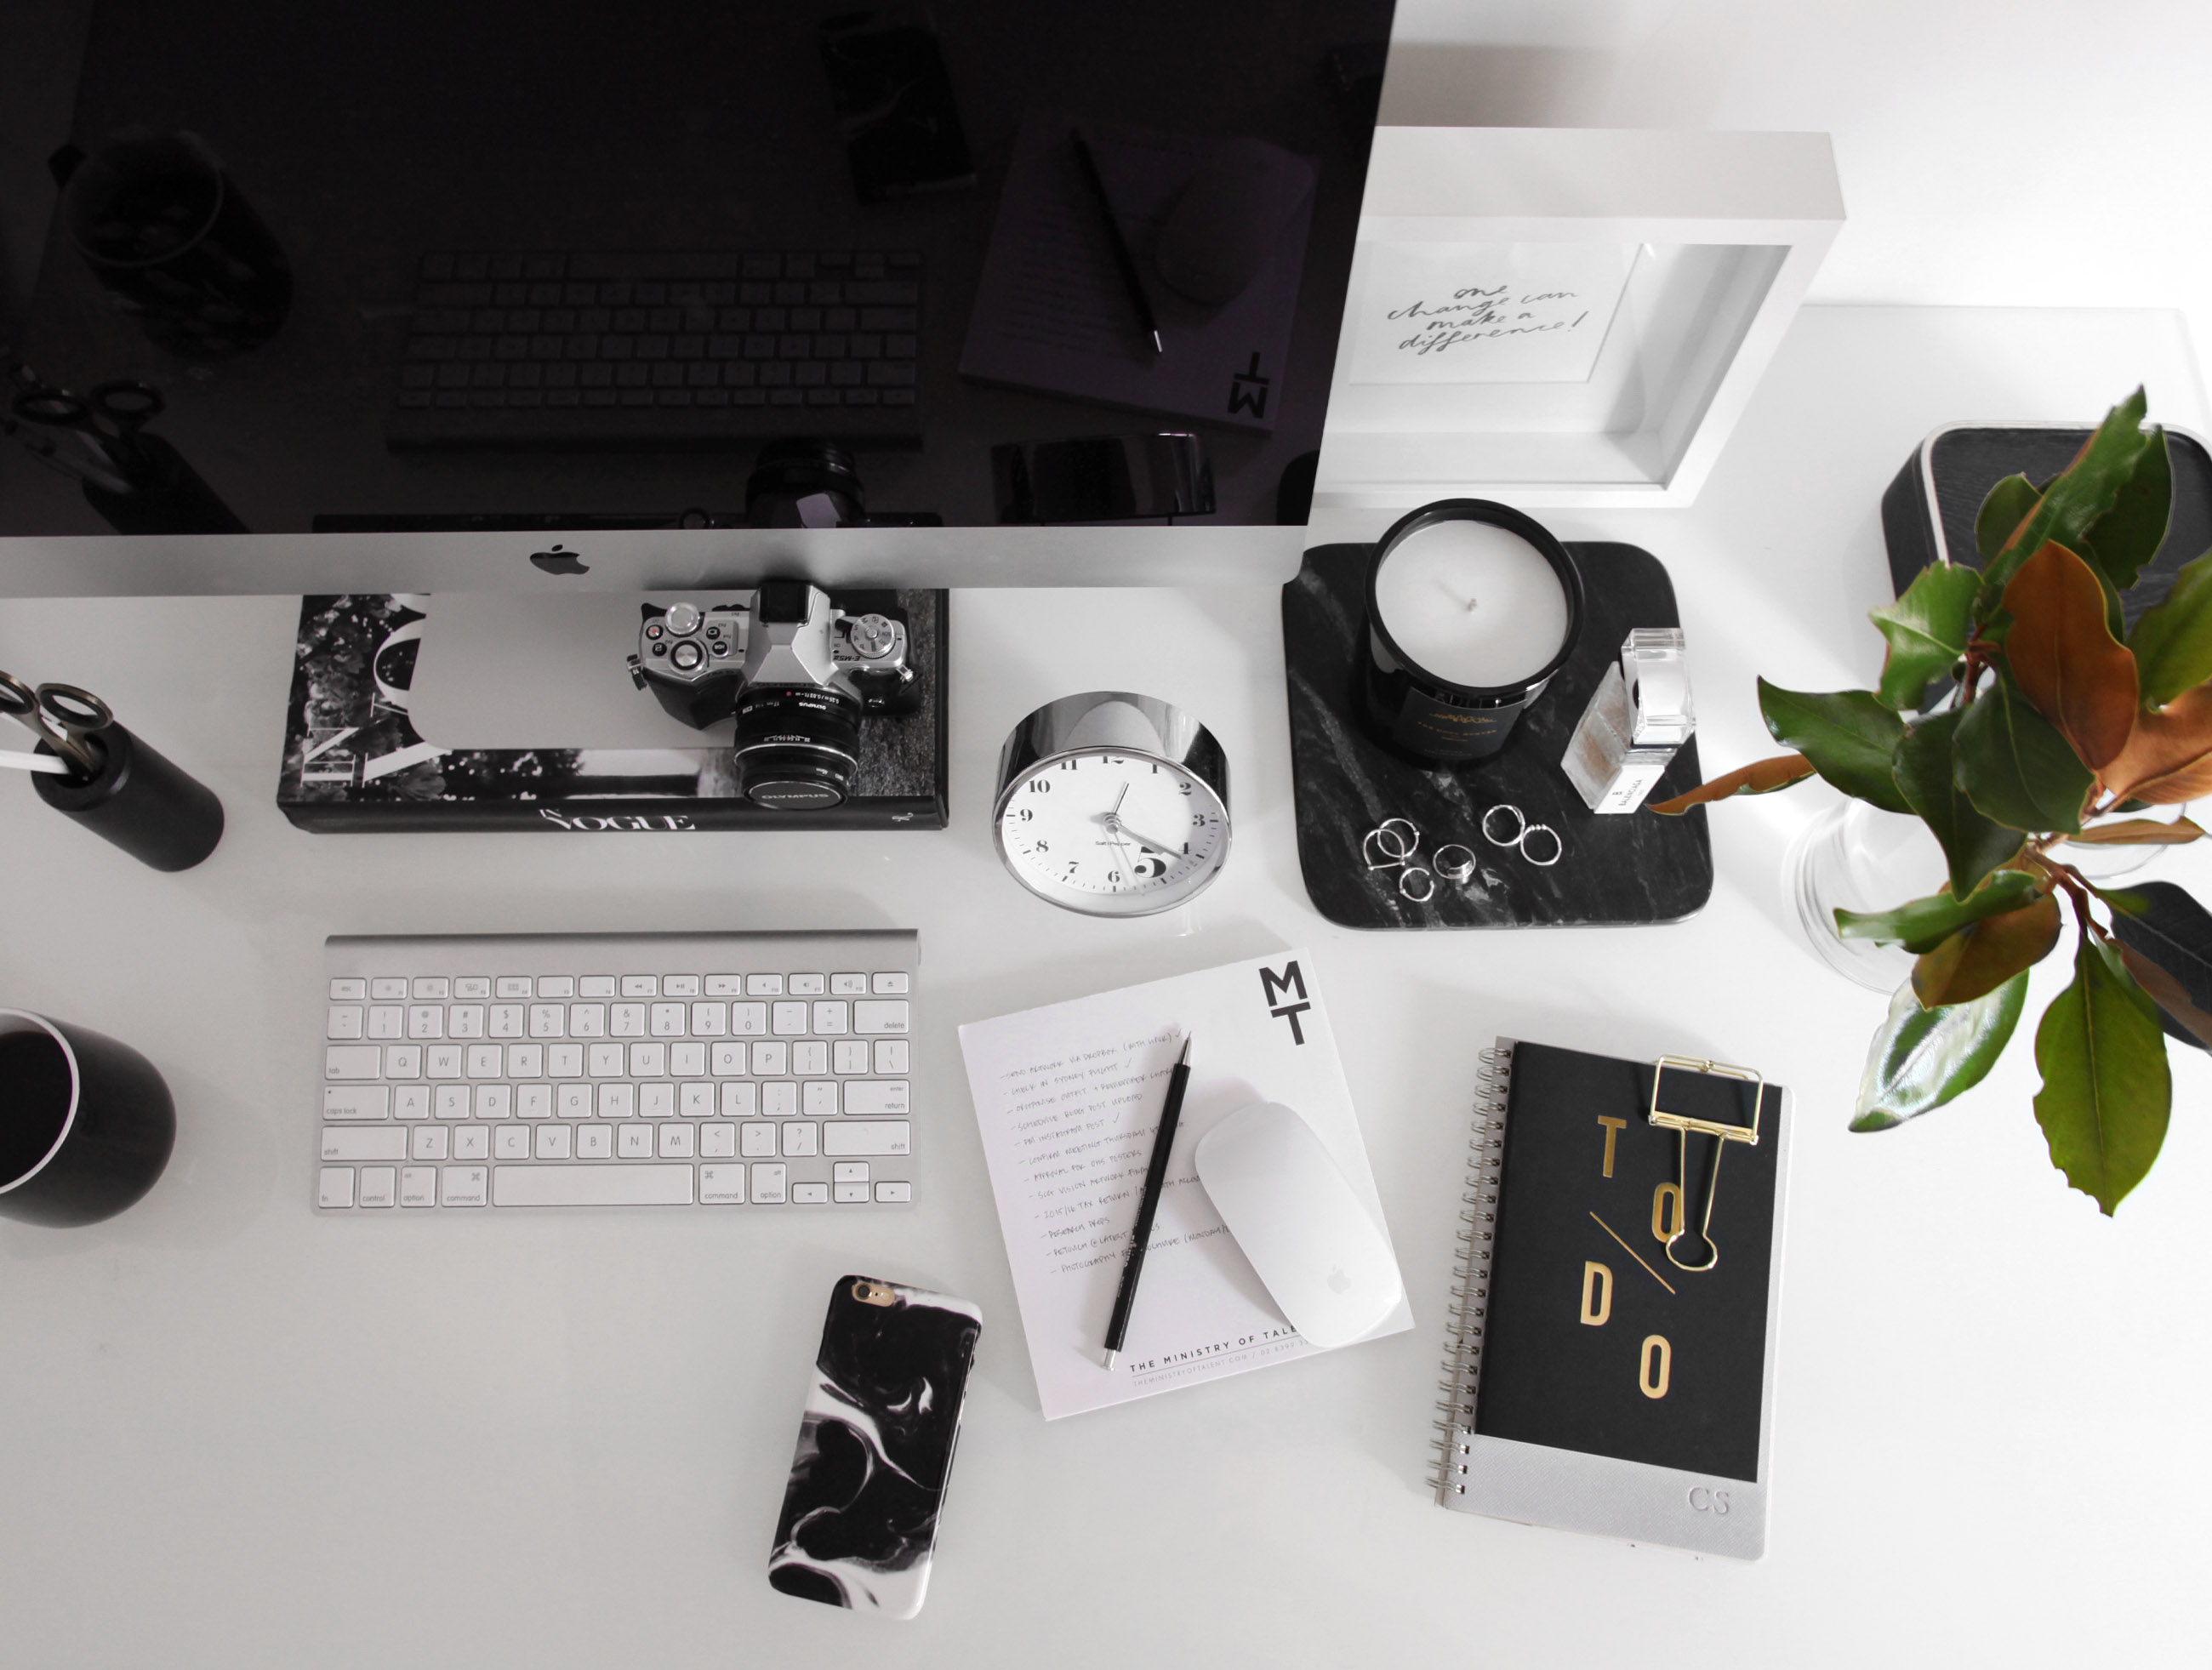 organise your workspace - design by aikonik 4